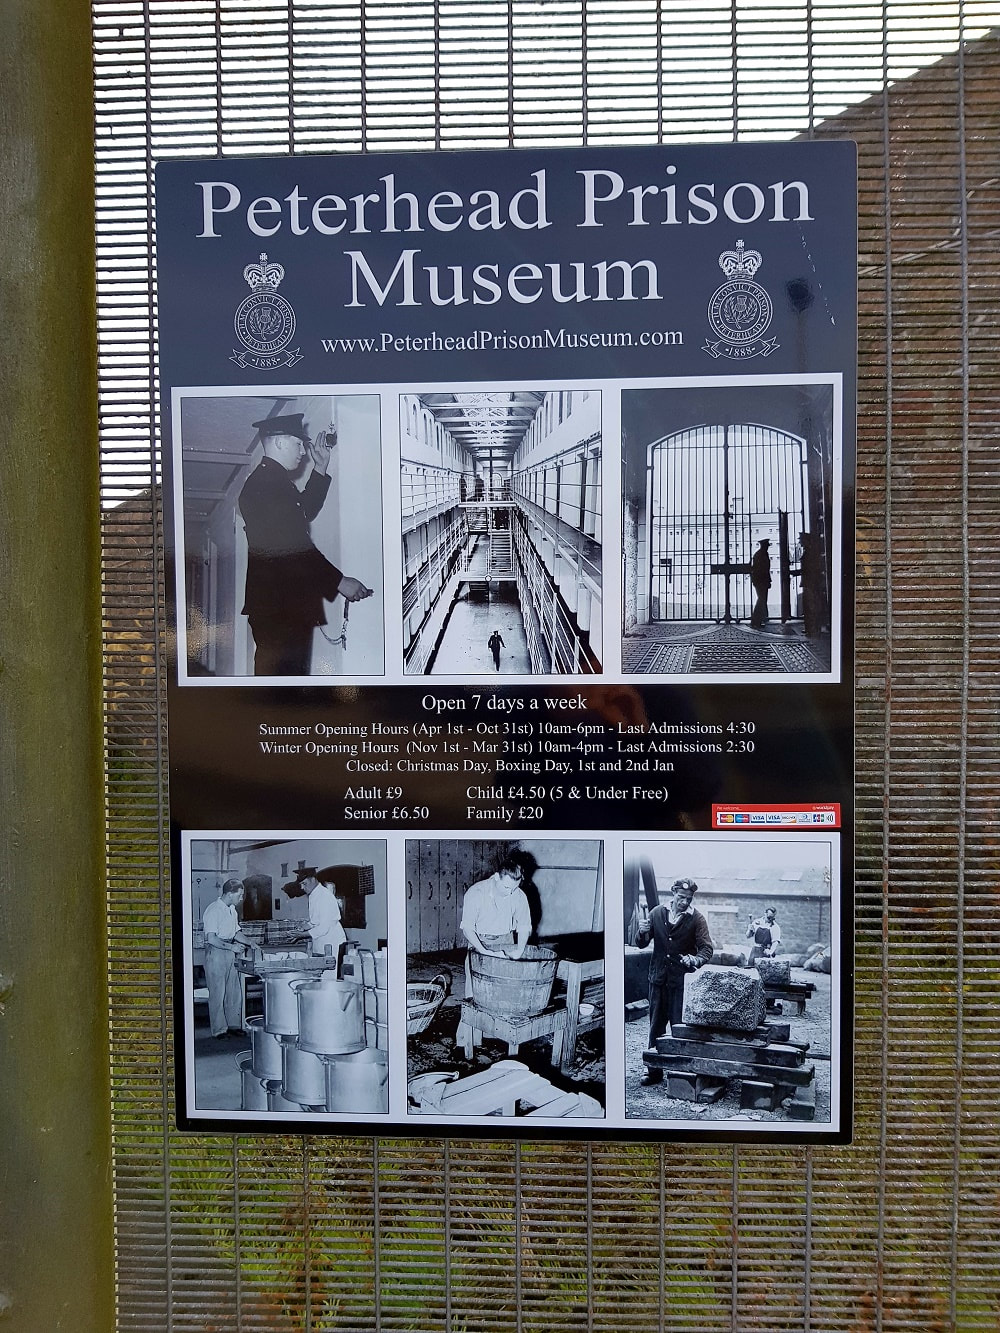 A black and white sign attached to a gate with details of Peterhead Prison Museum opening times and entry costs